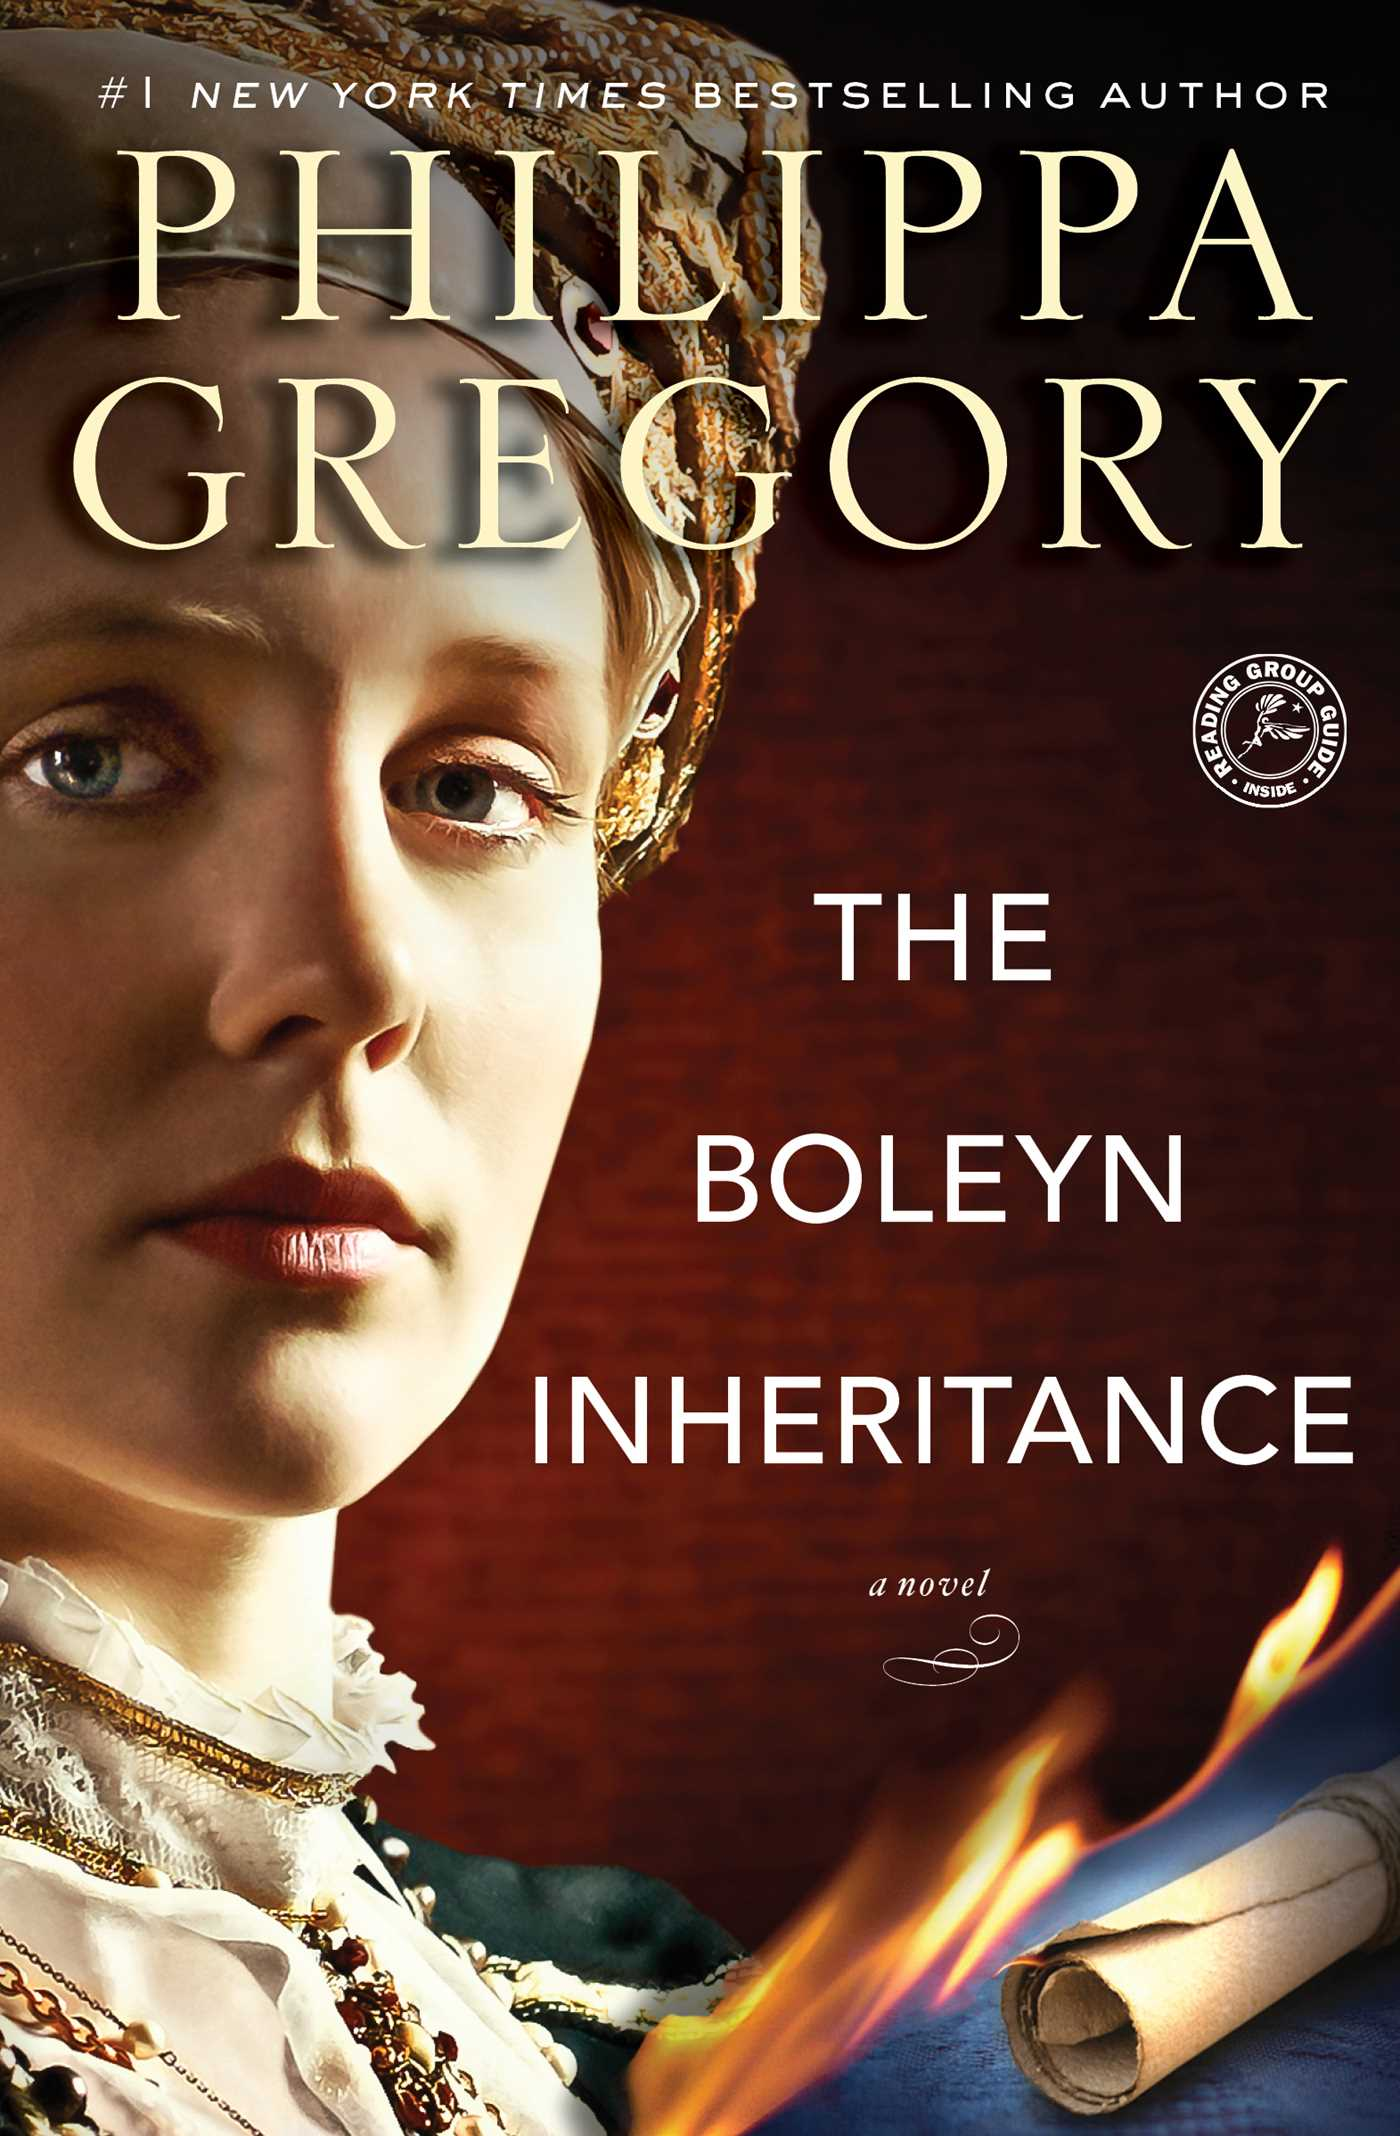 Boleyn-inheritance-9780743298544_hr